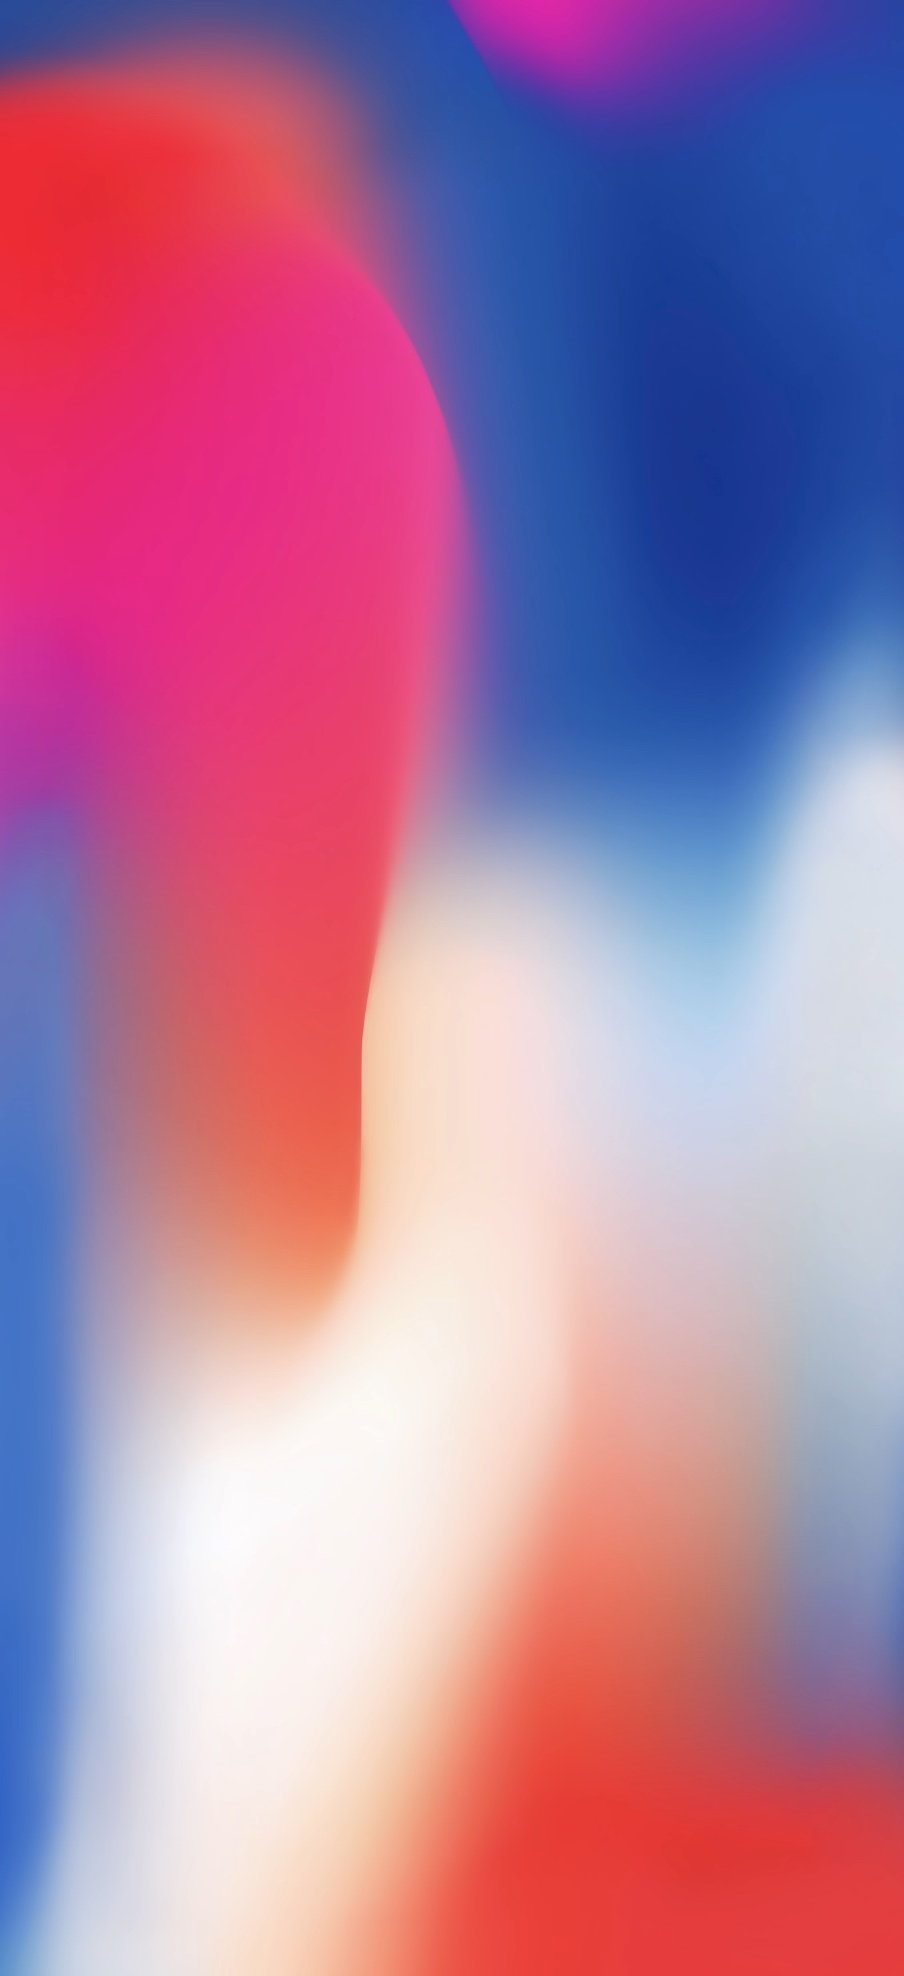 You Can Download Official iPhone X Wallpaper Here 904x1976